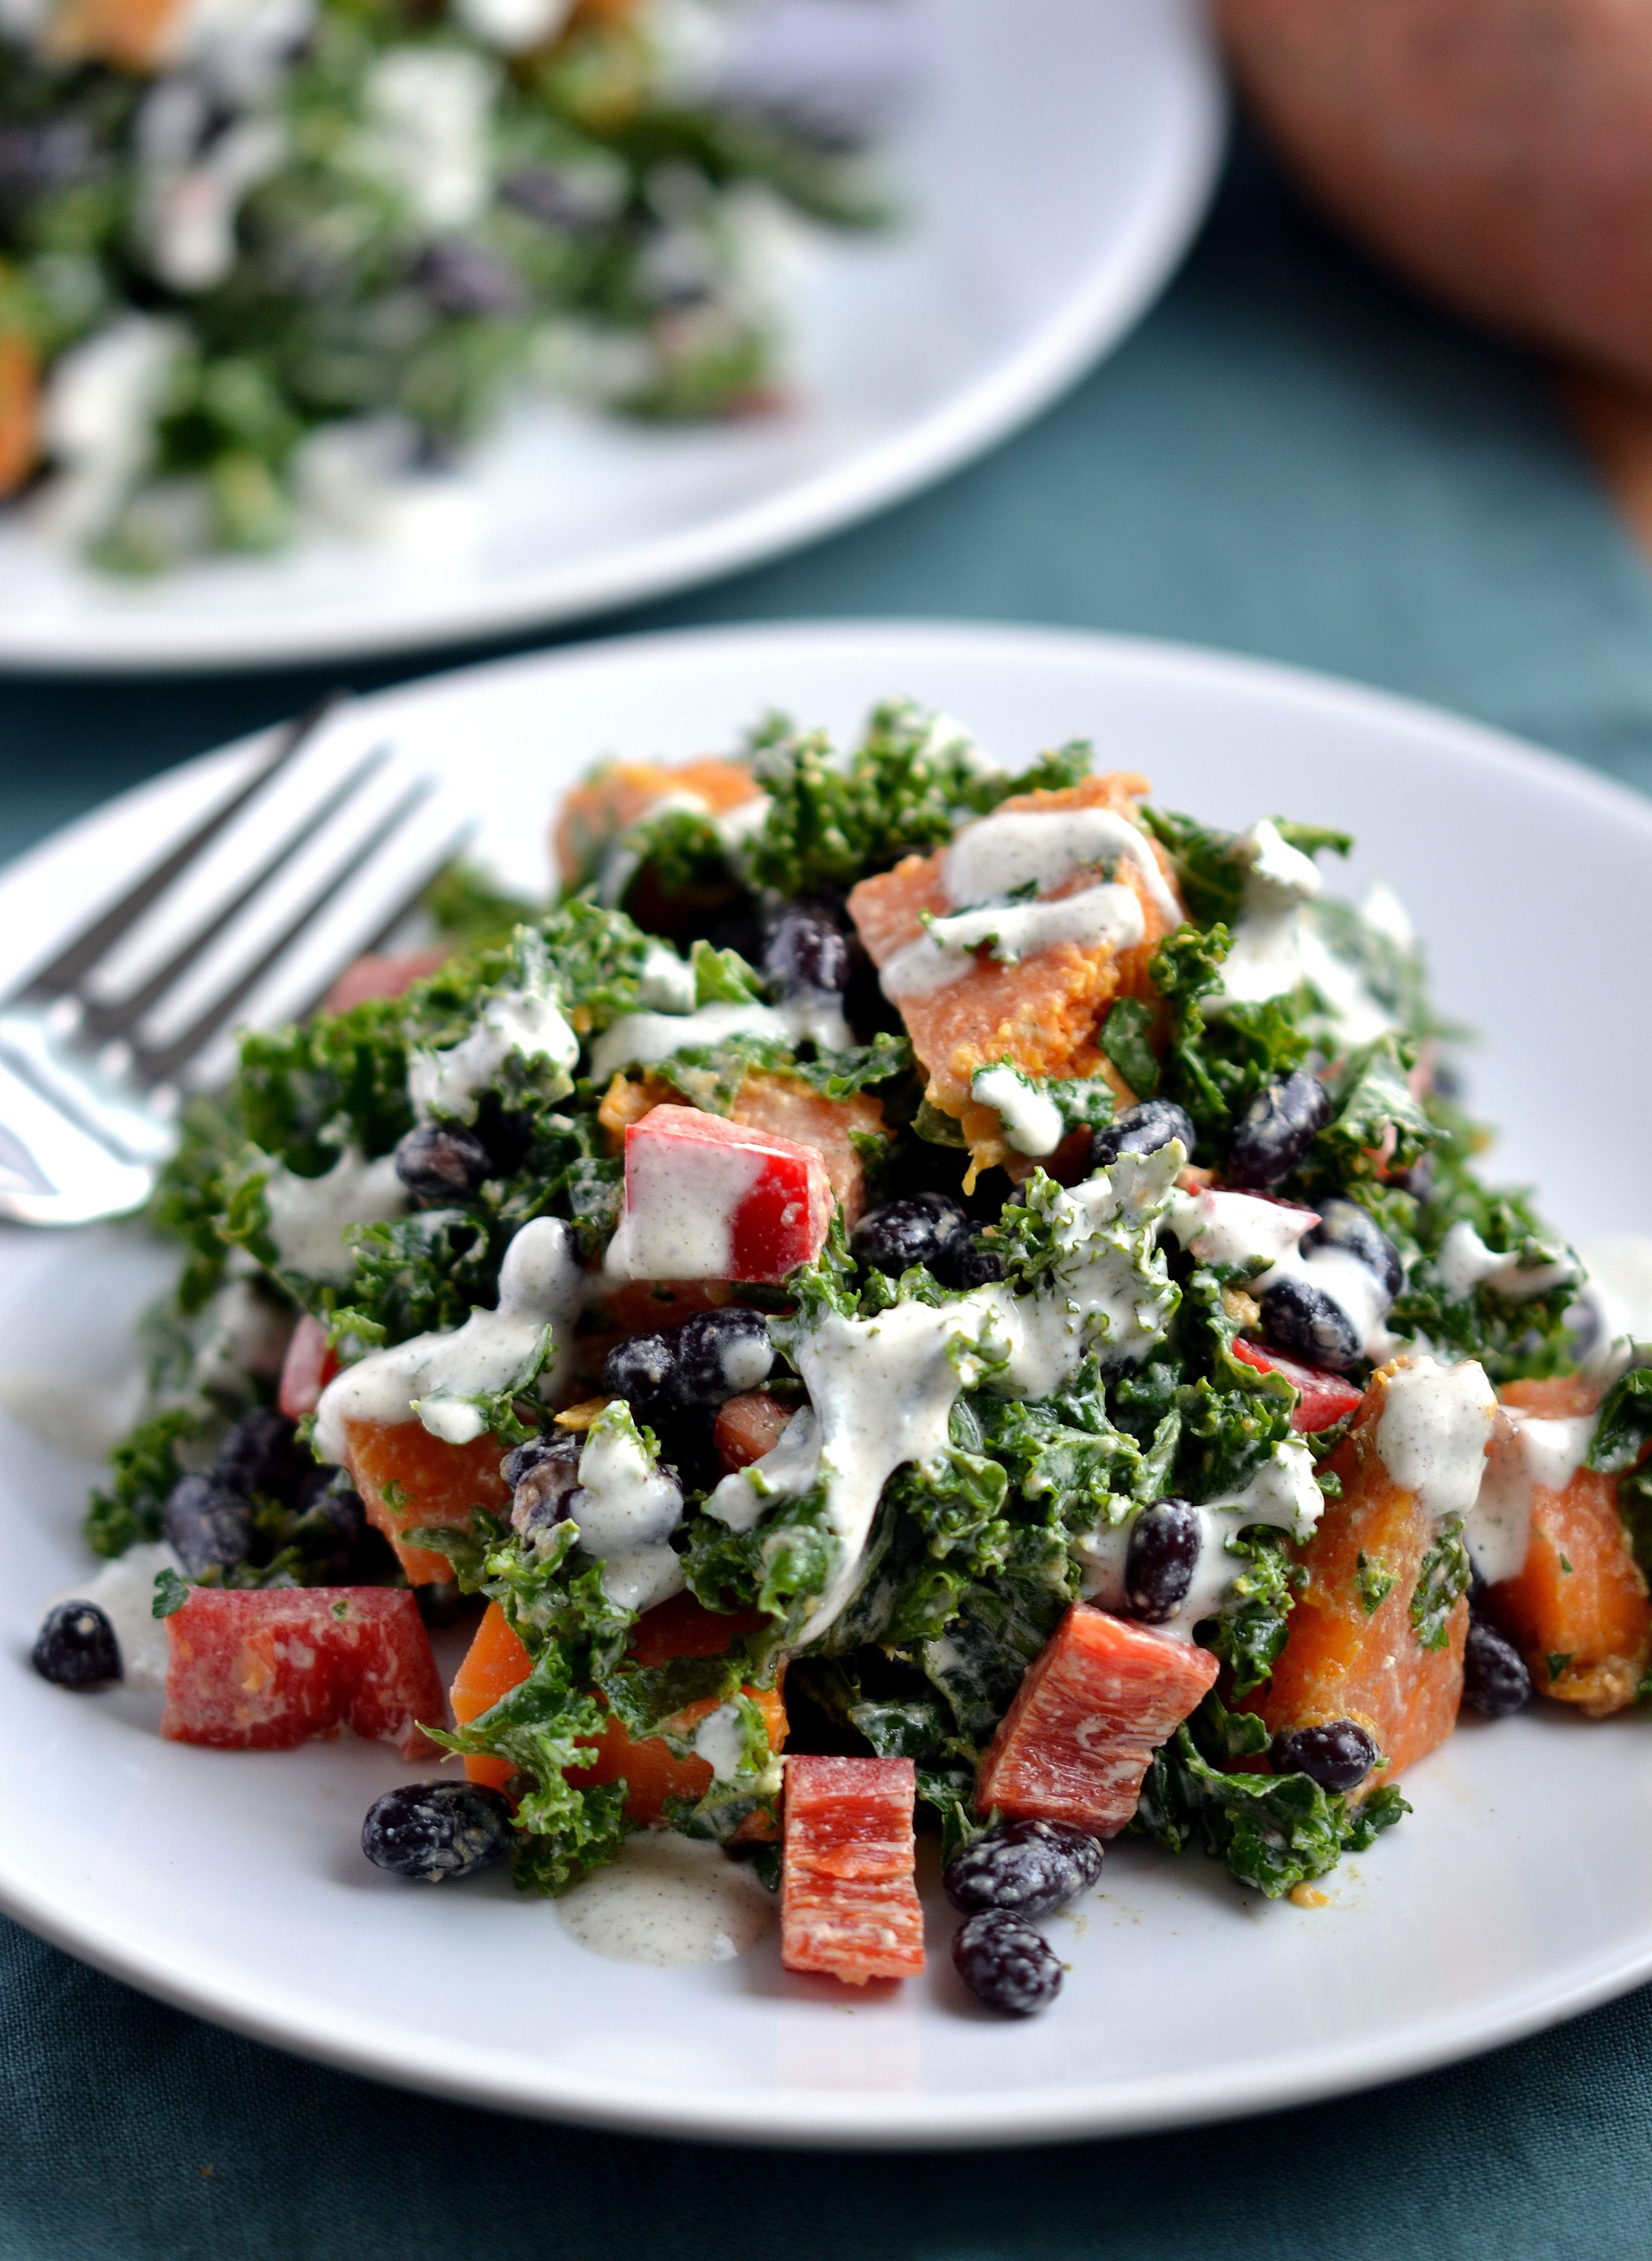 Creamy Kale Salad With Sweet Potato Black Beans Recipe Tester For Ricki Heller S Upcoming Cookbook Salad With Sweet Potato Black Bean Recipes Kale Salad